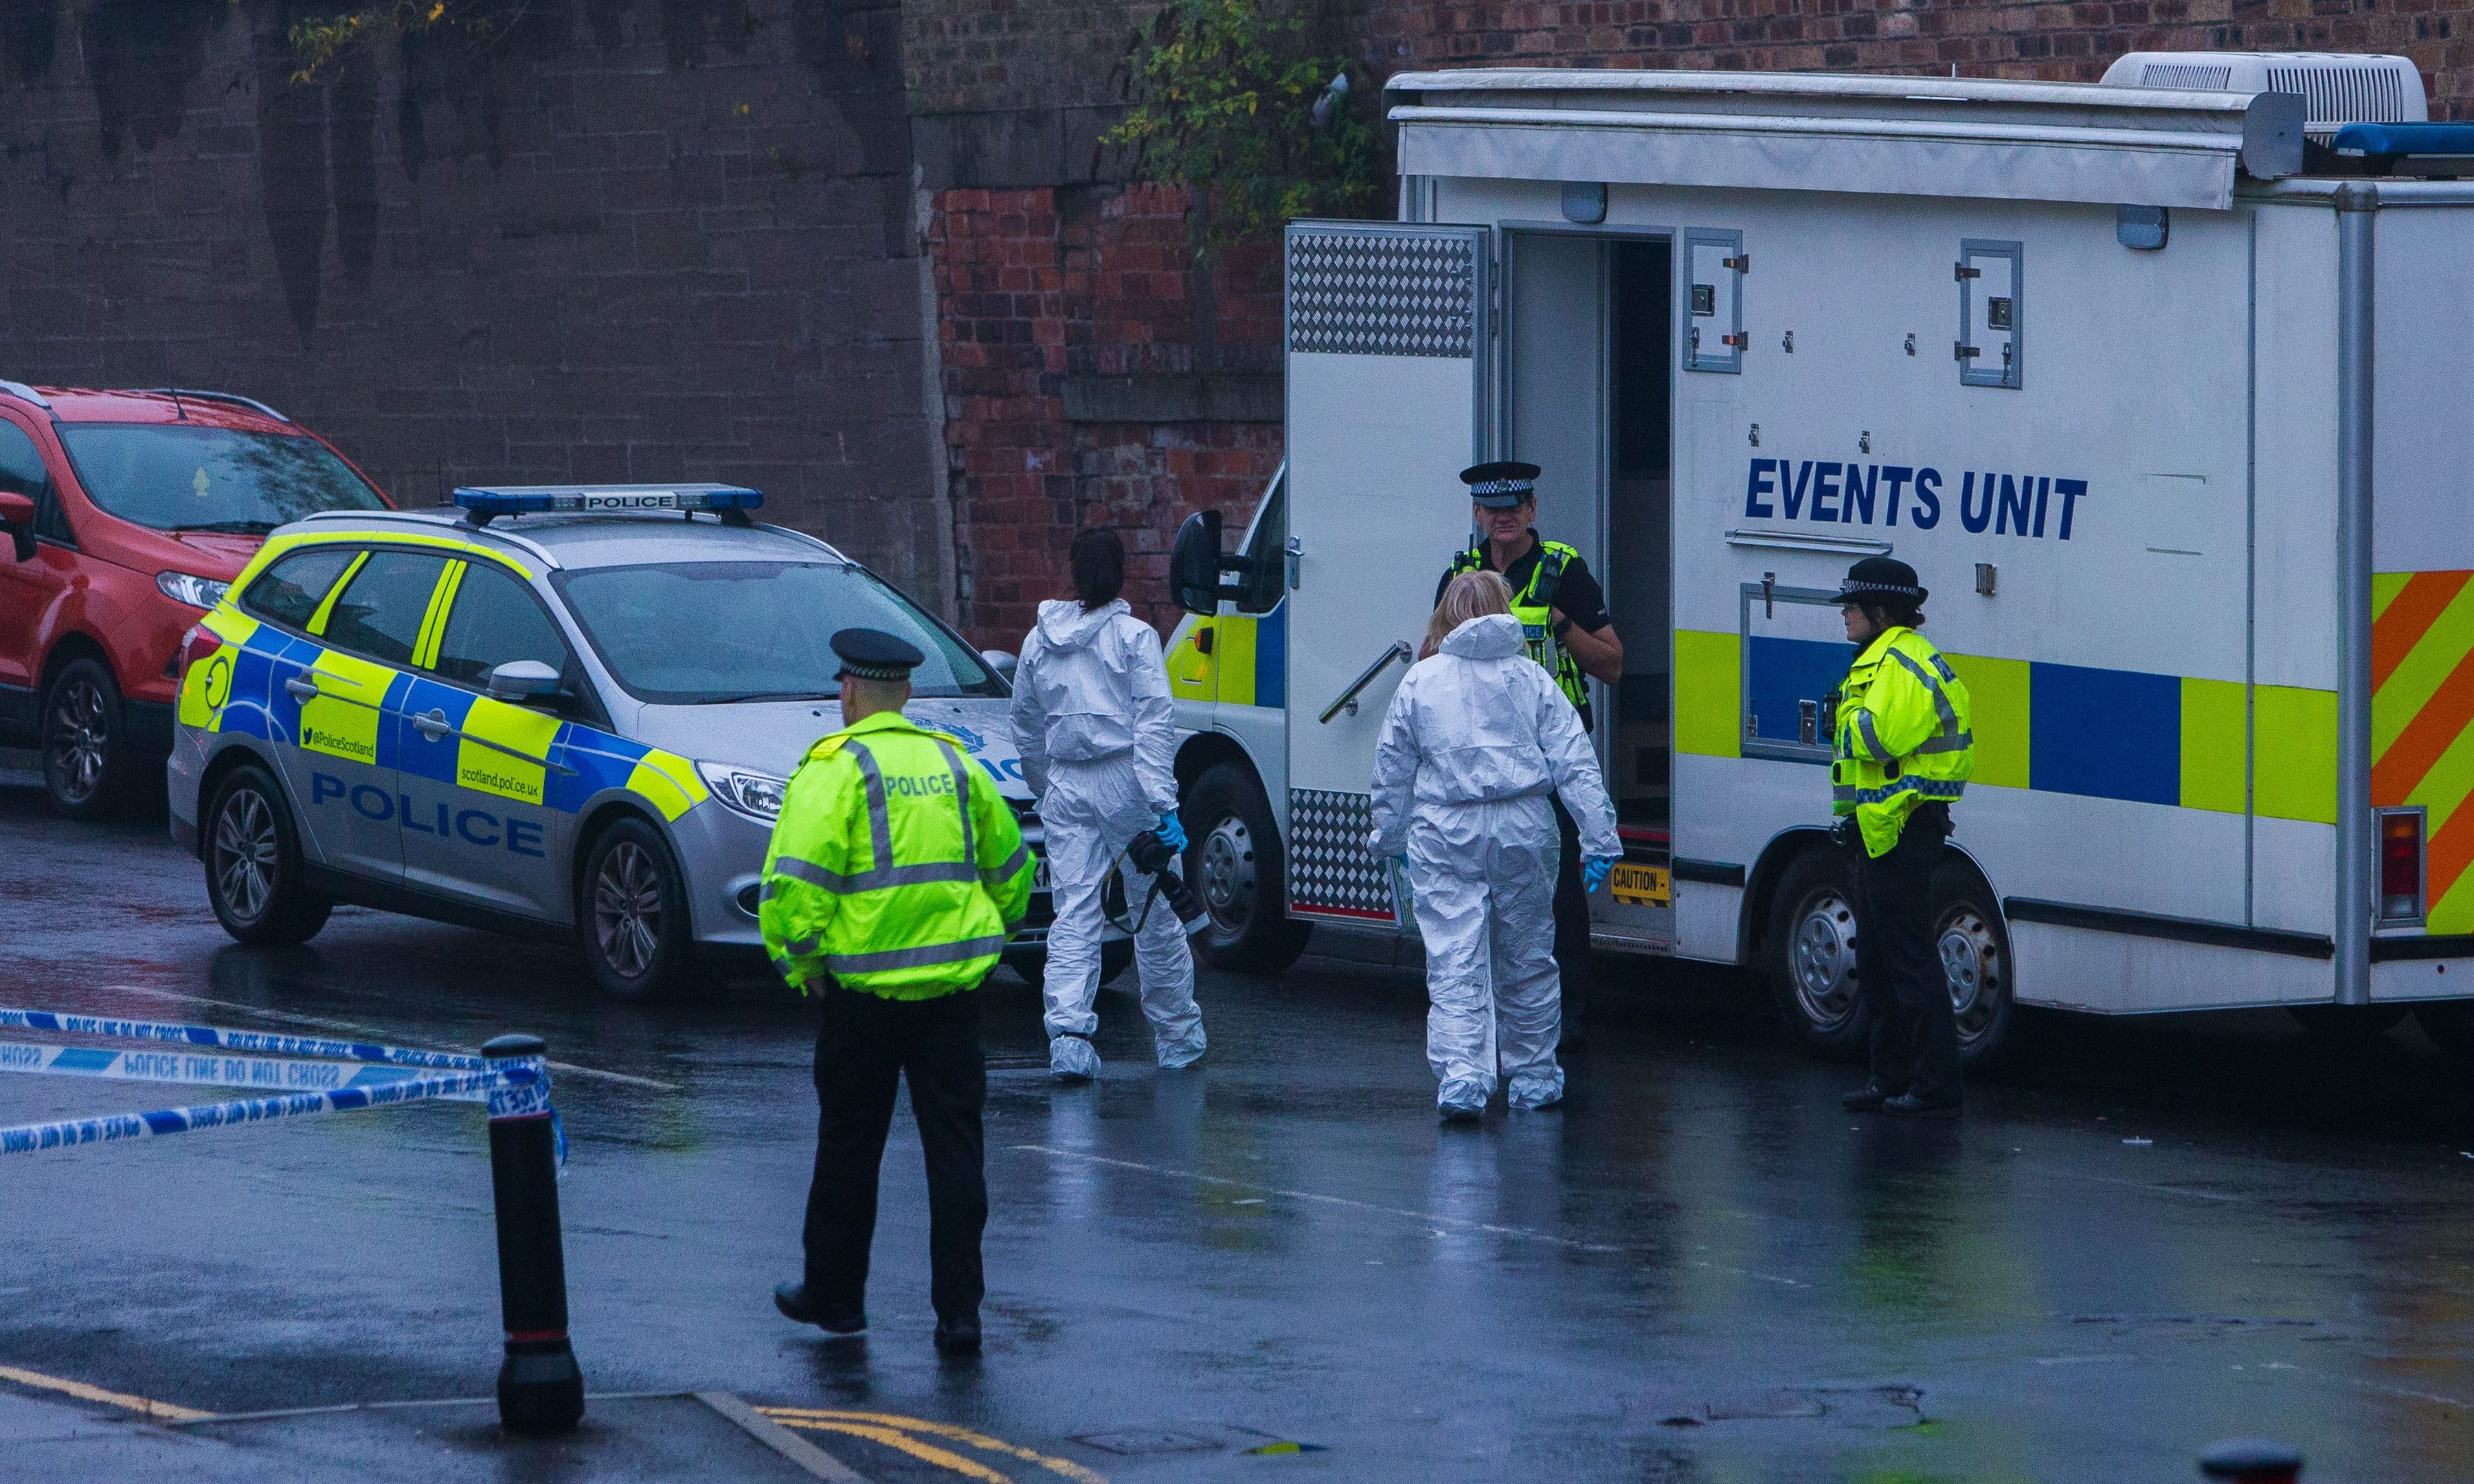 Police and forensics officers at the scene.